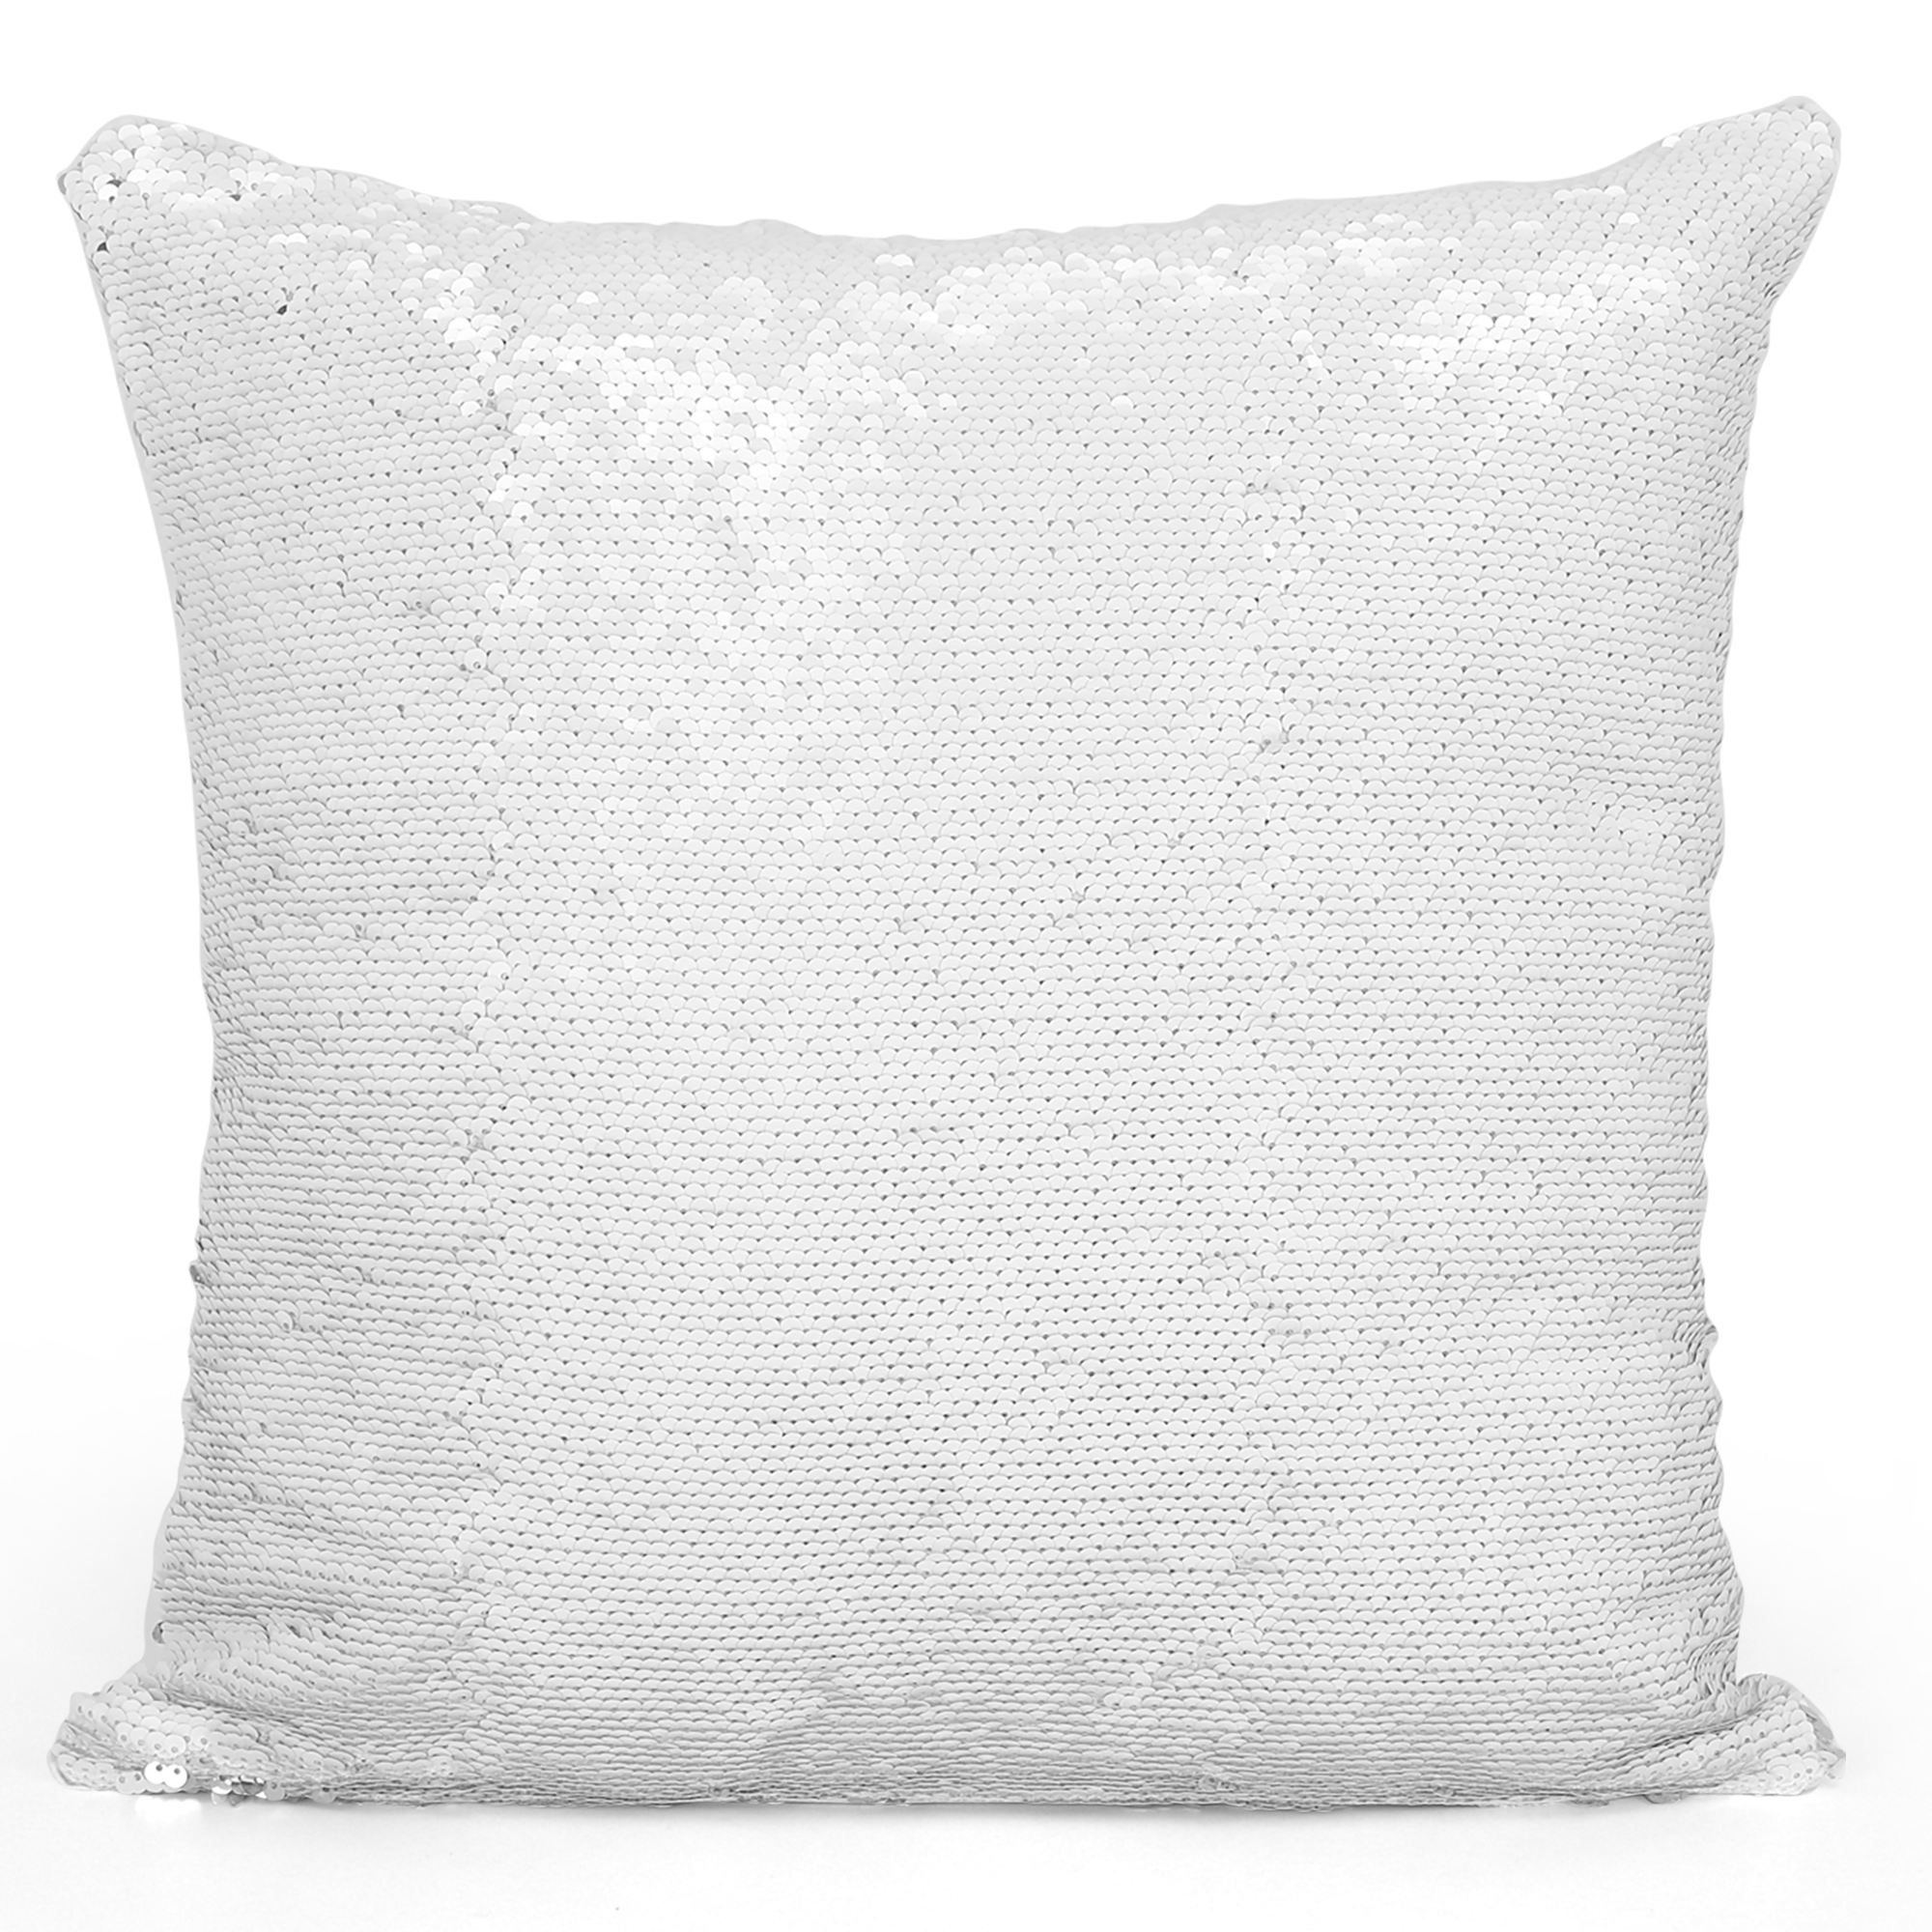 Custom Sequin Pillow